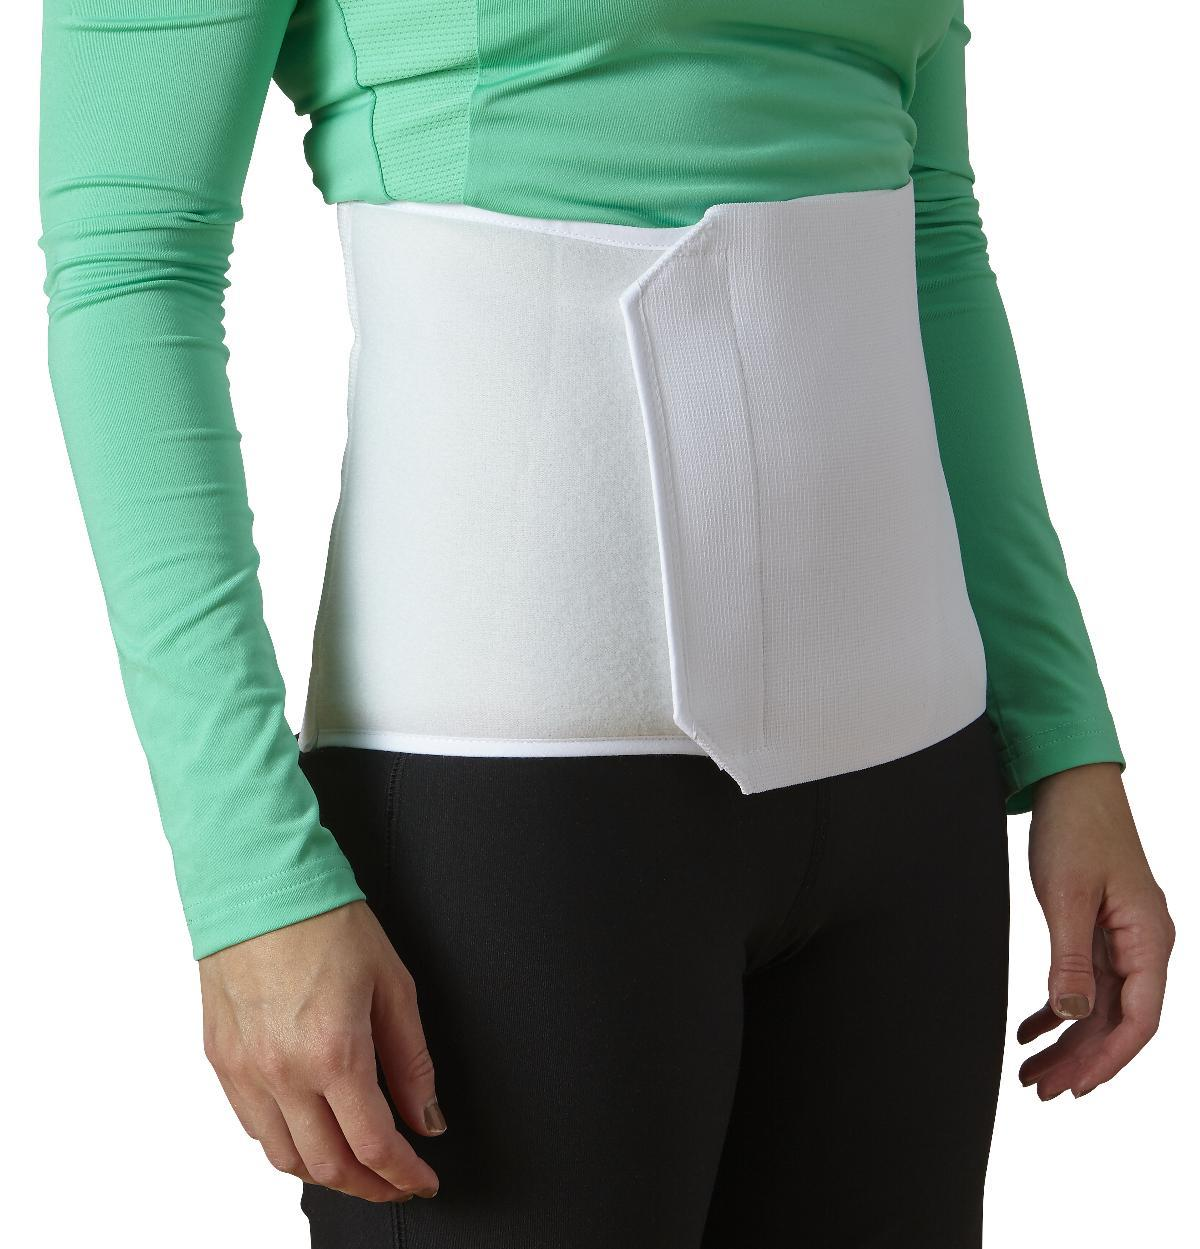 Therapy & Fitness Orthopedic Soft Goods Abdominal Binders & Ribs Belts - Mds169024 - Binder Abdominal Unisize 46-62 9 MDS169024